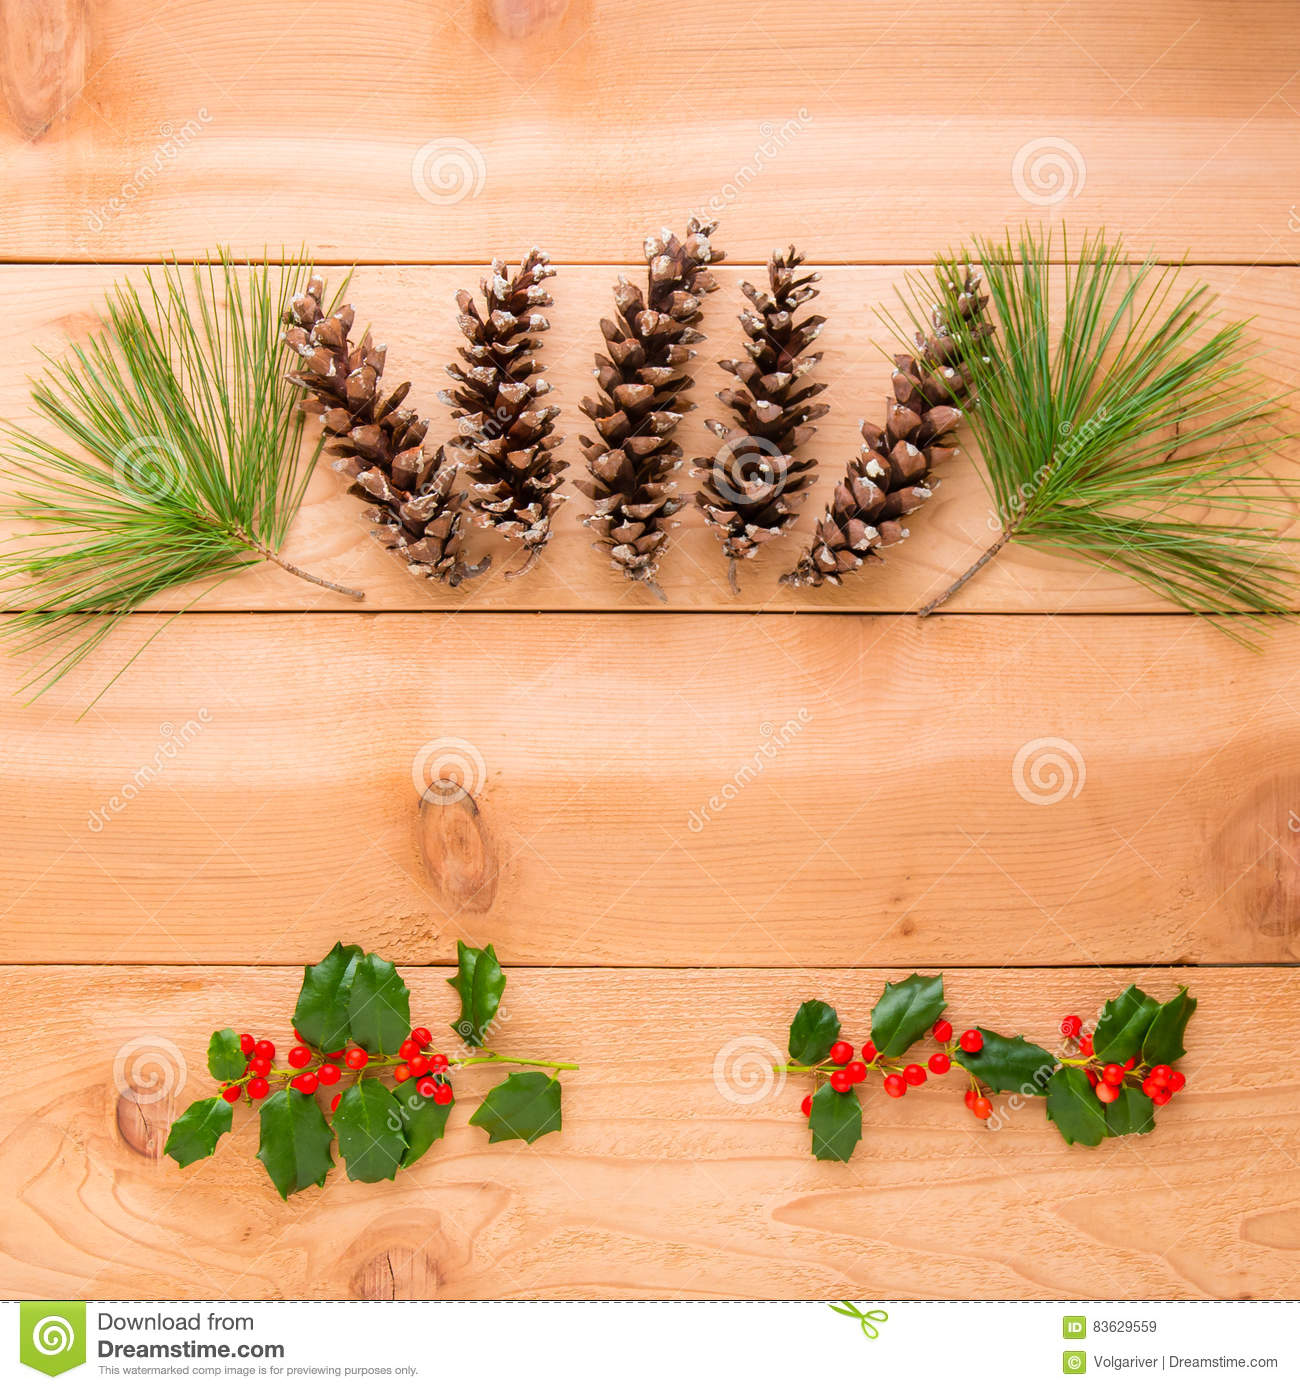 Christmas decoration composition of pine cones and branches on